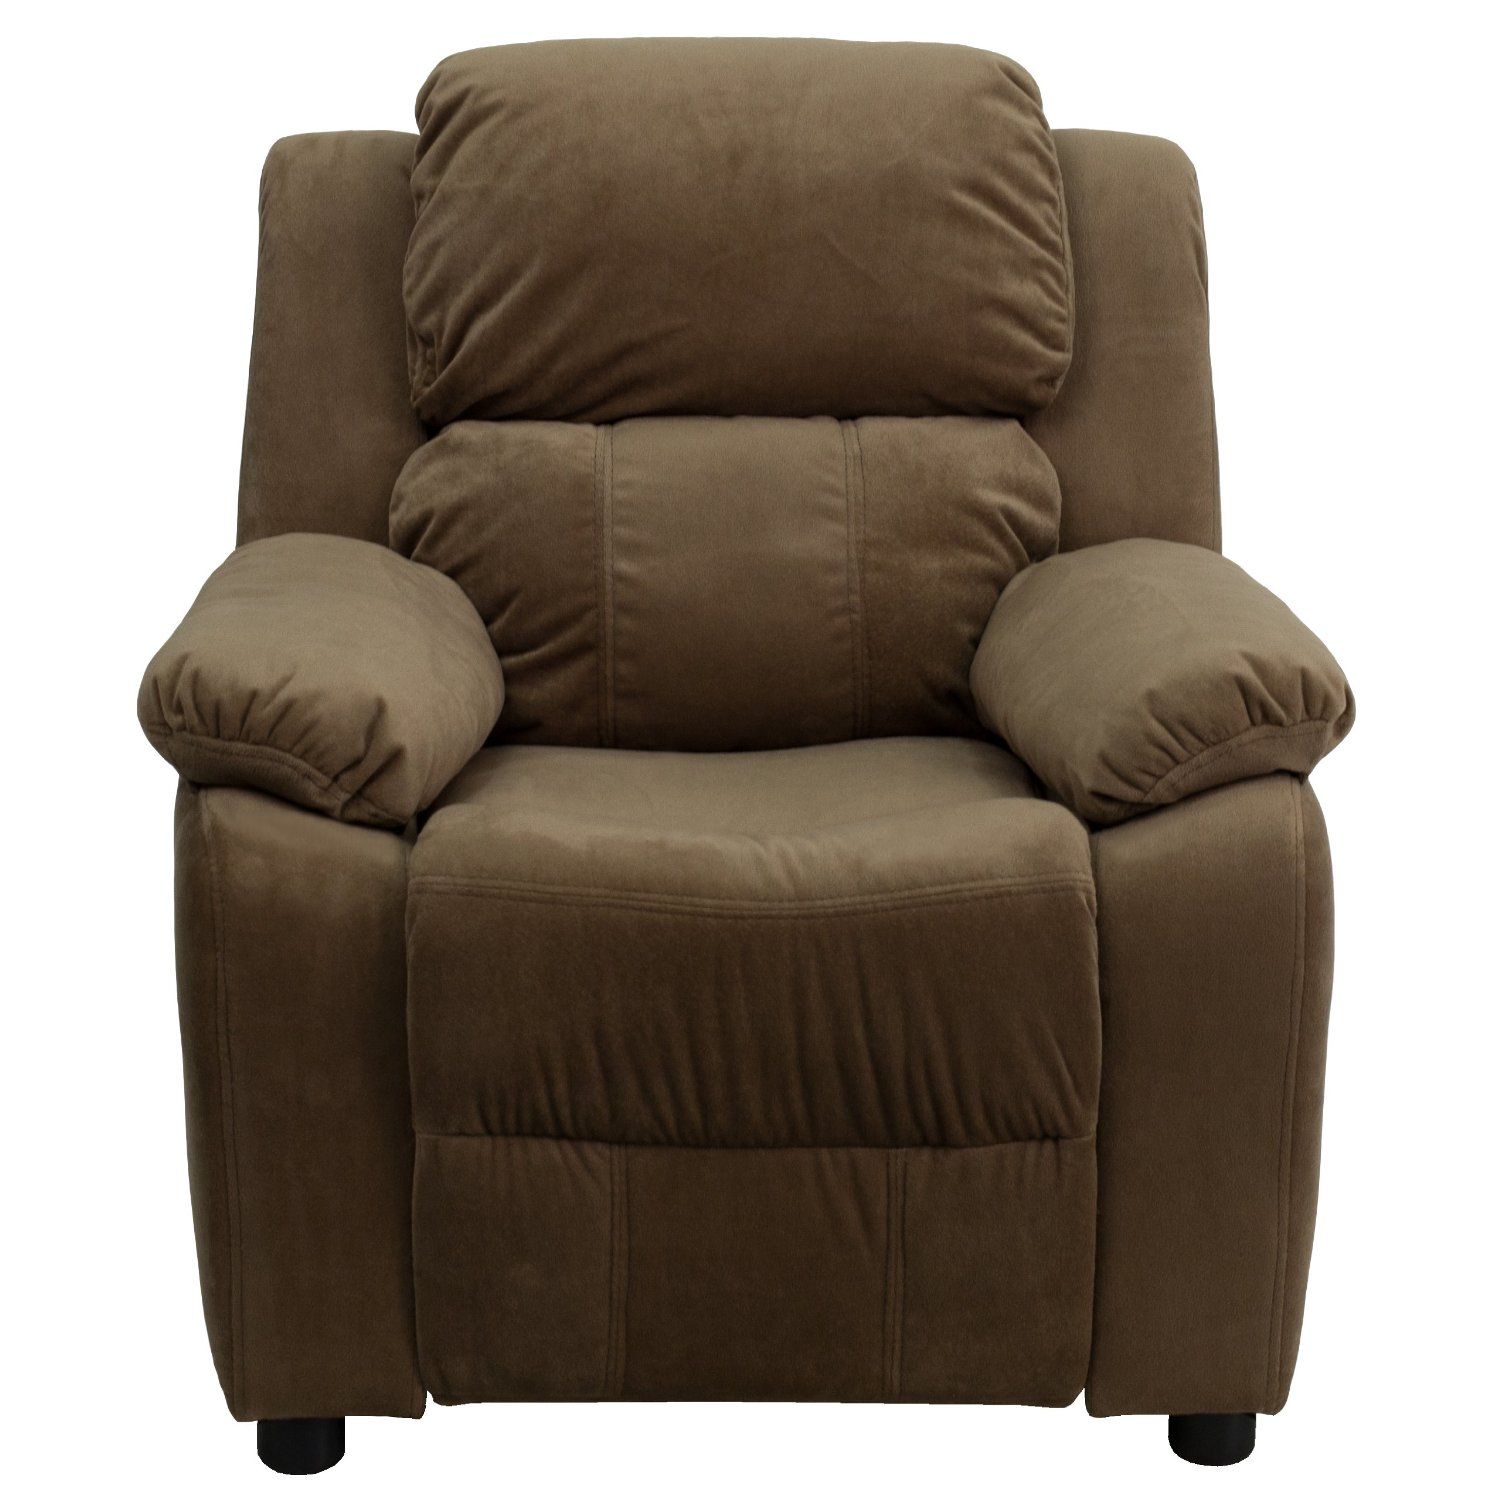 Deluxe Heavily Padded Contemporary Brown Microfiber Kids Recliner